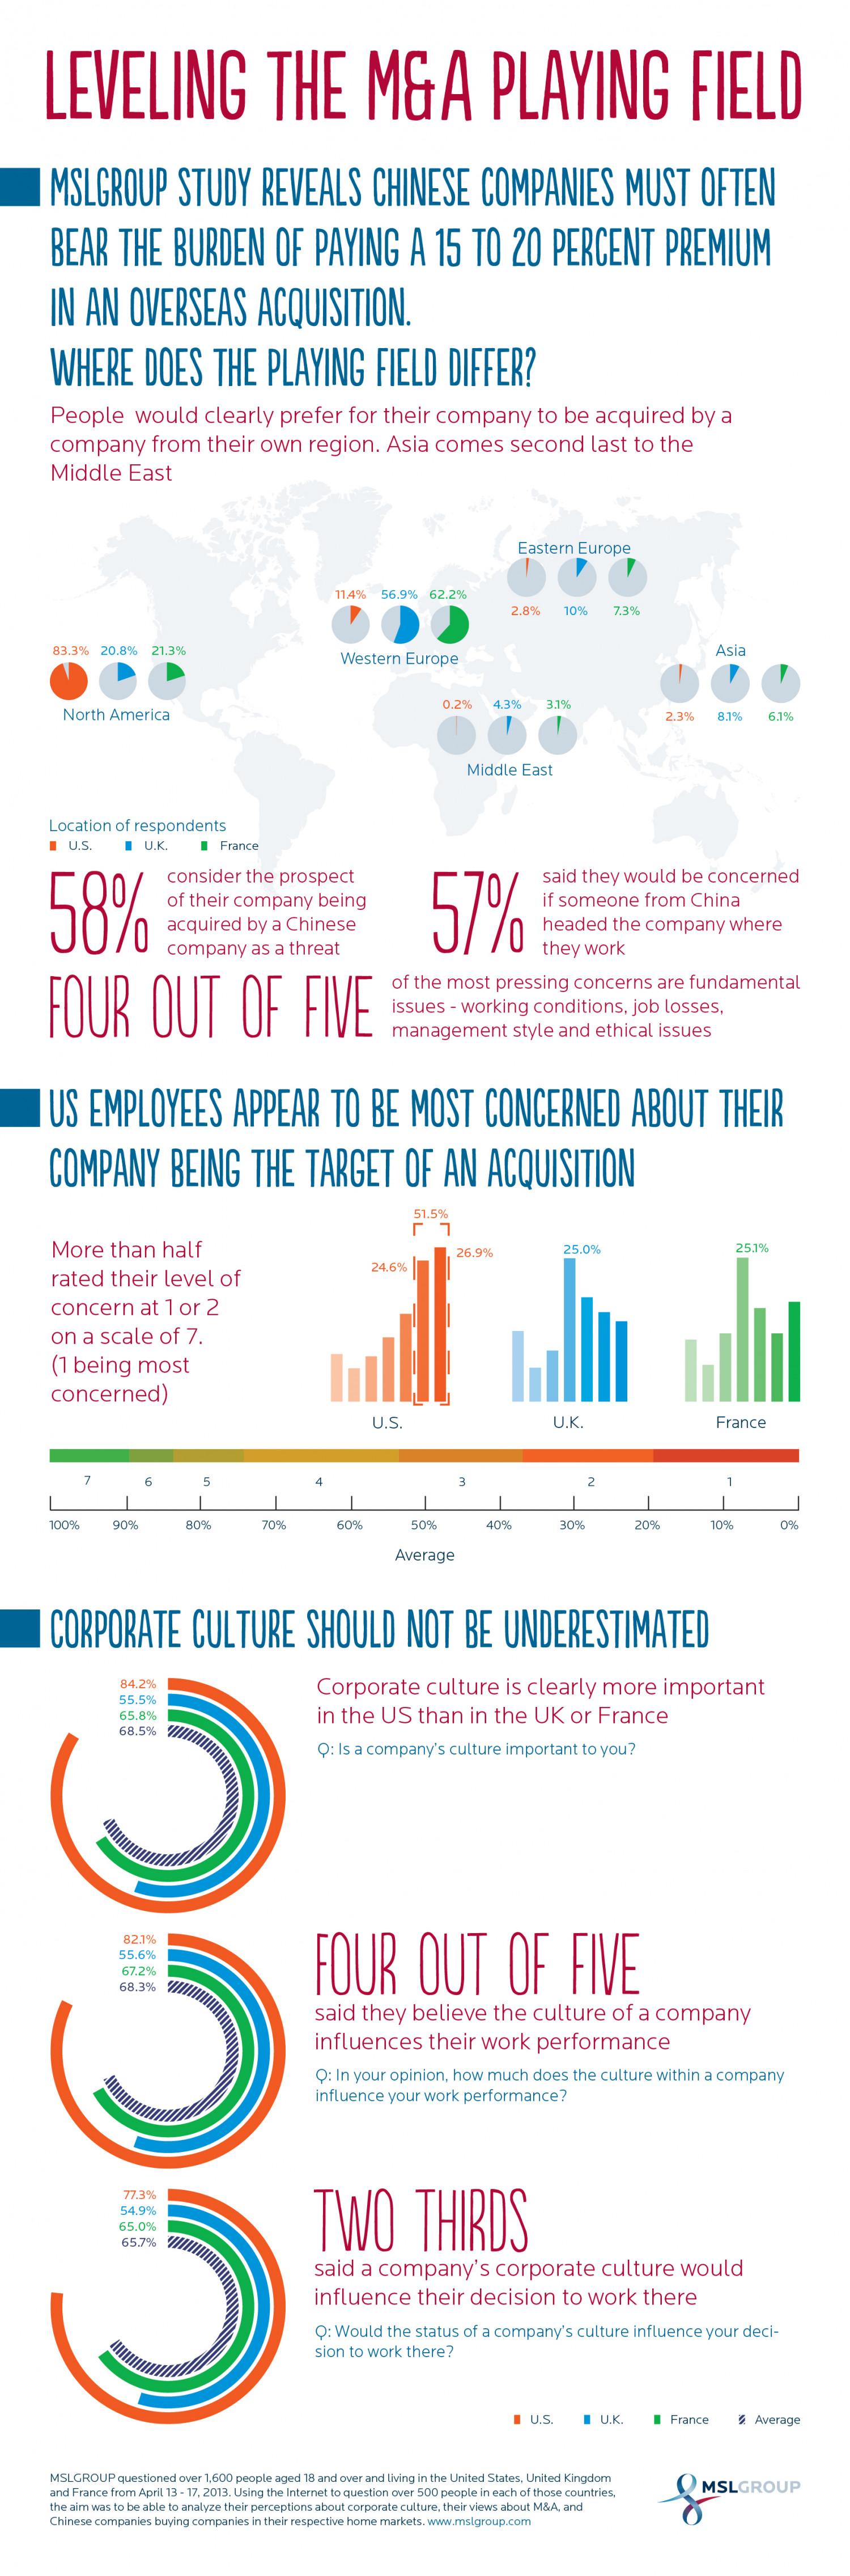 Leveling The M&A Playing Field MSLGROUP China Infographic